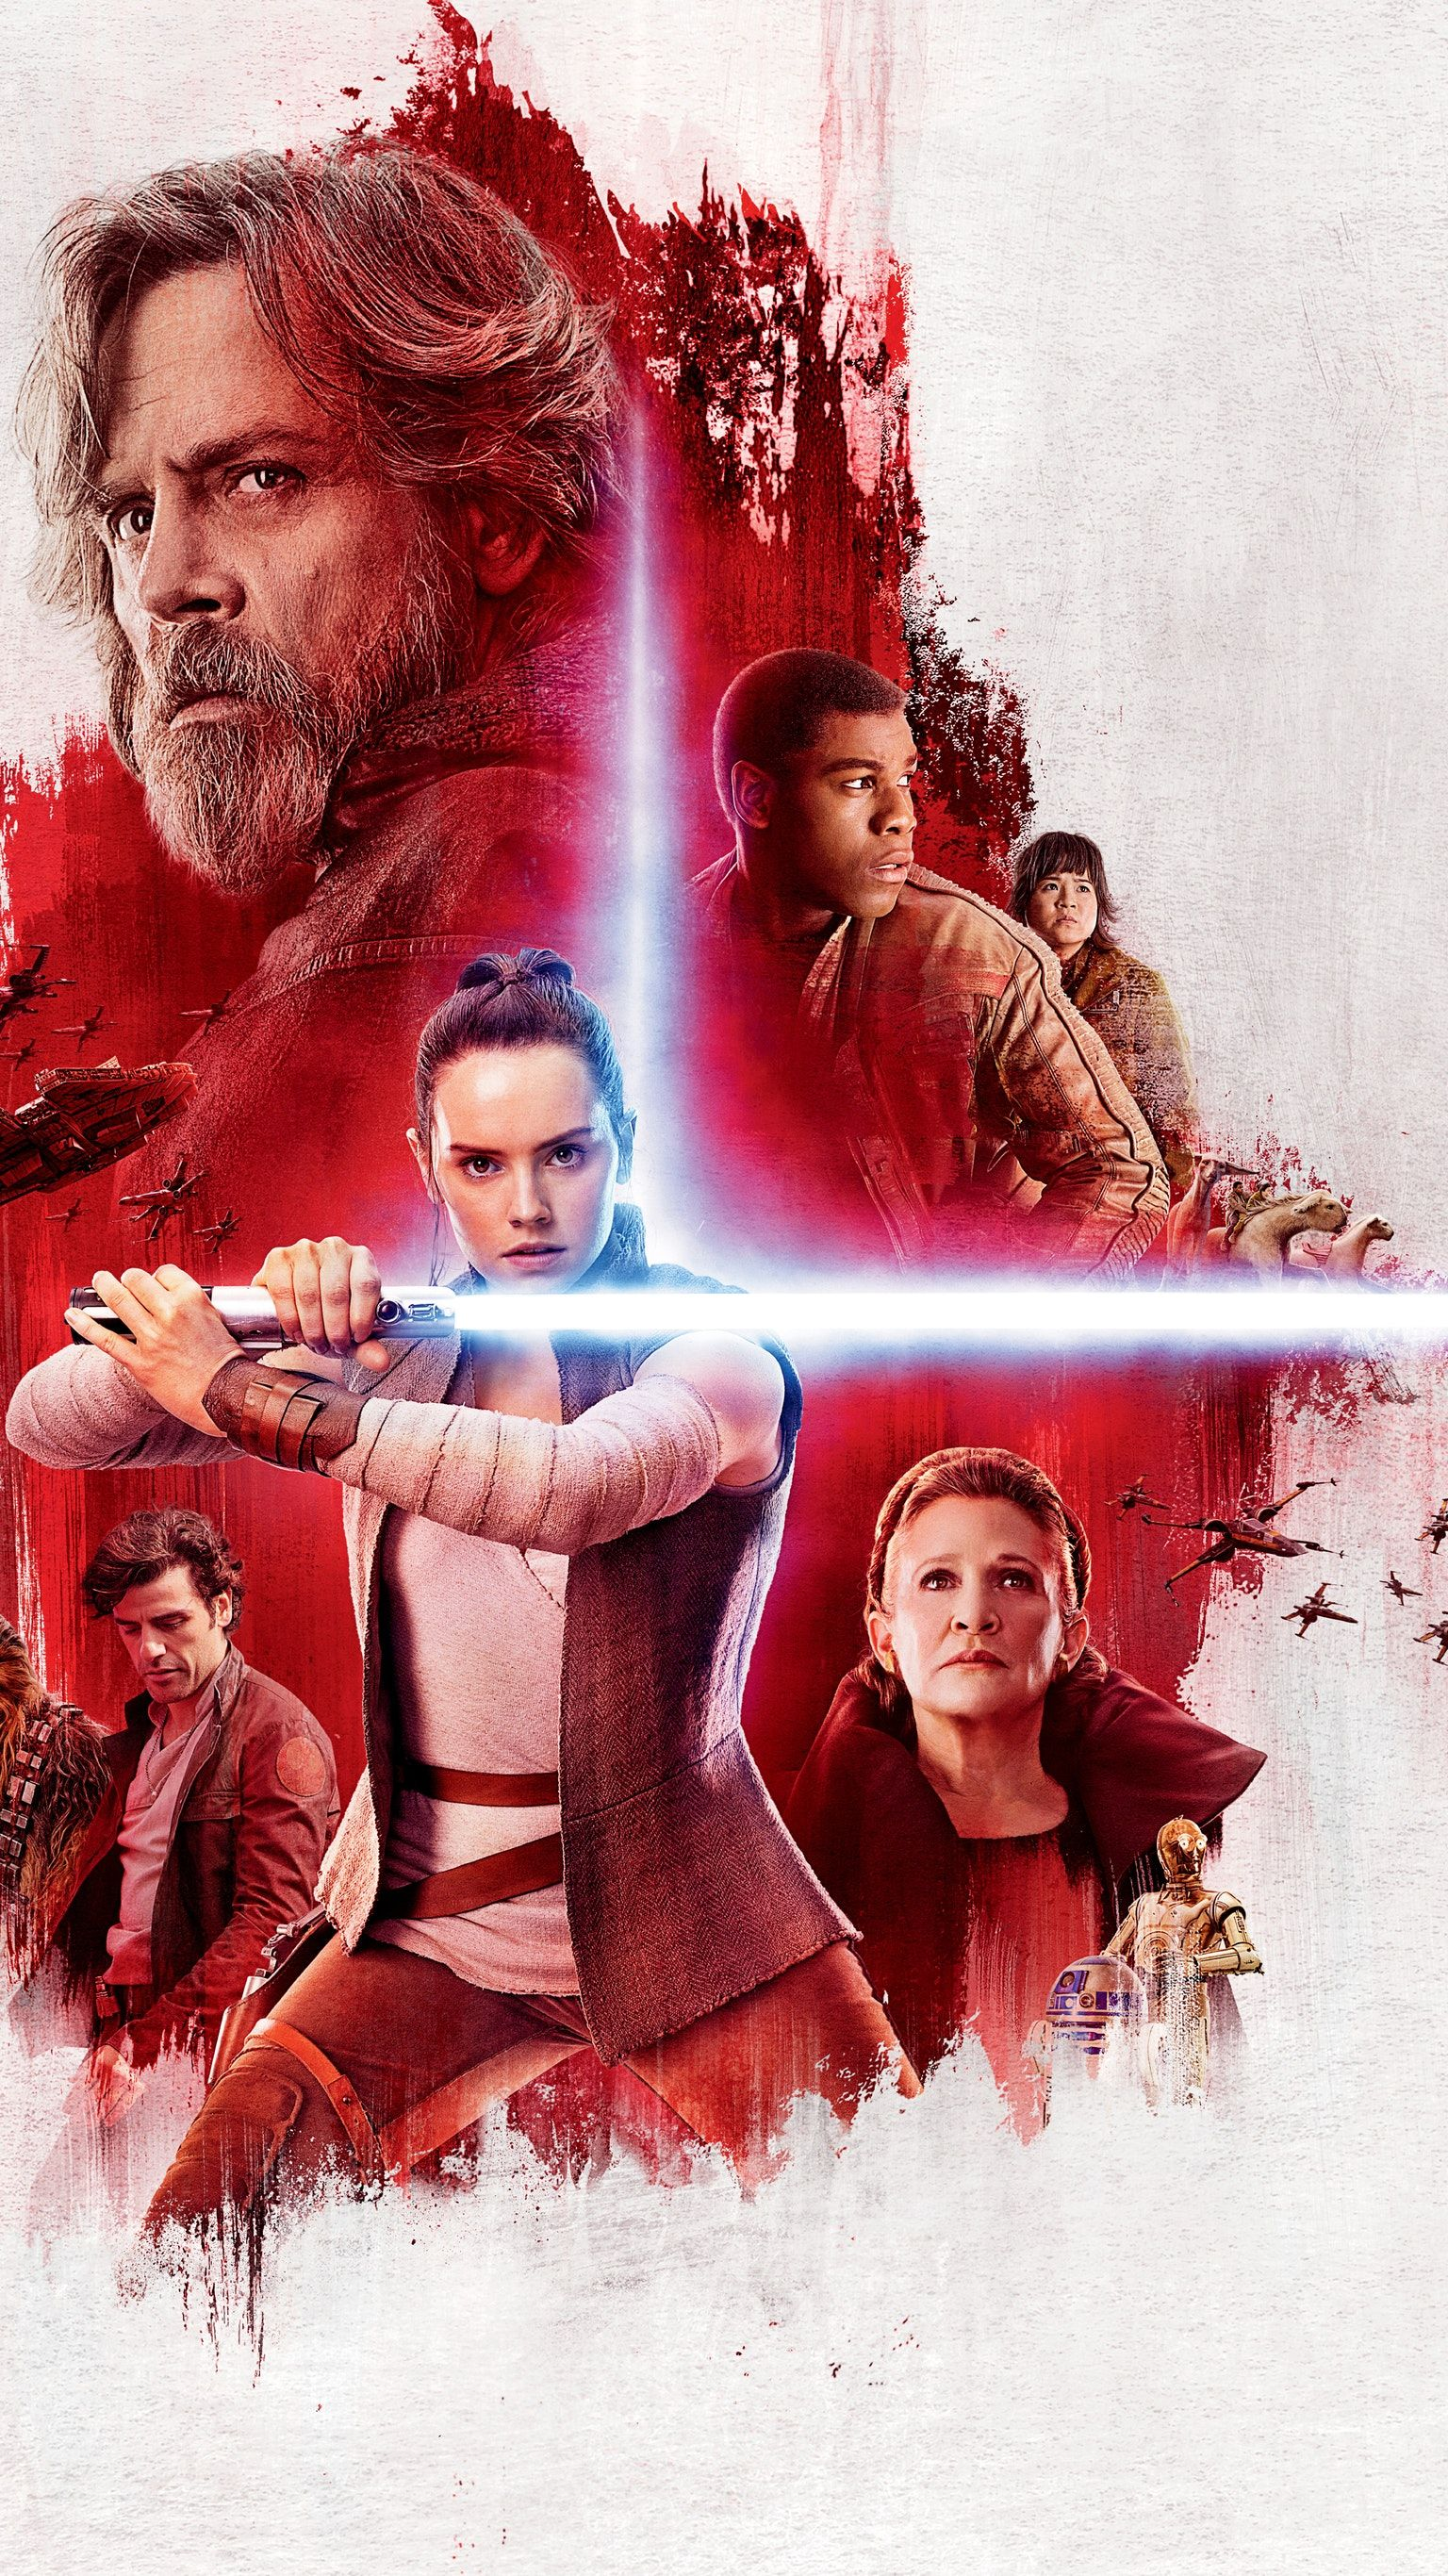 Star Wars The Last Jedi 2017 Phone Wallpaper Moviemania Star Wars Wallpaper Star Wars Poster Star Wars Film